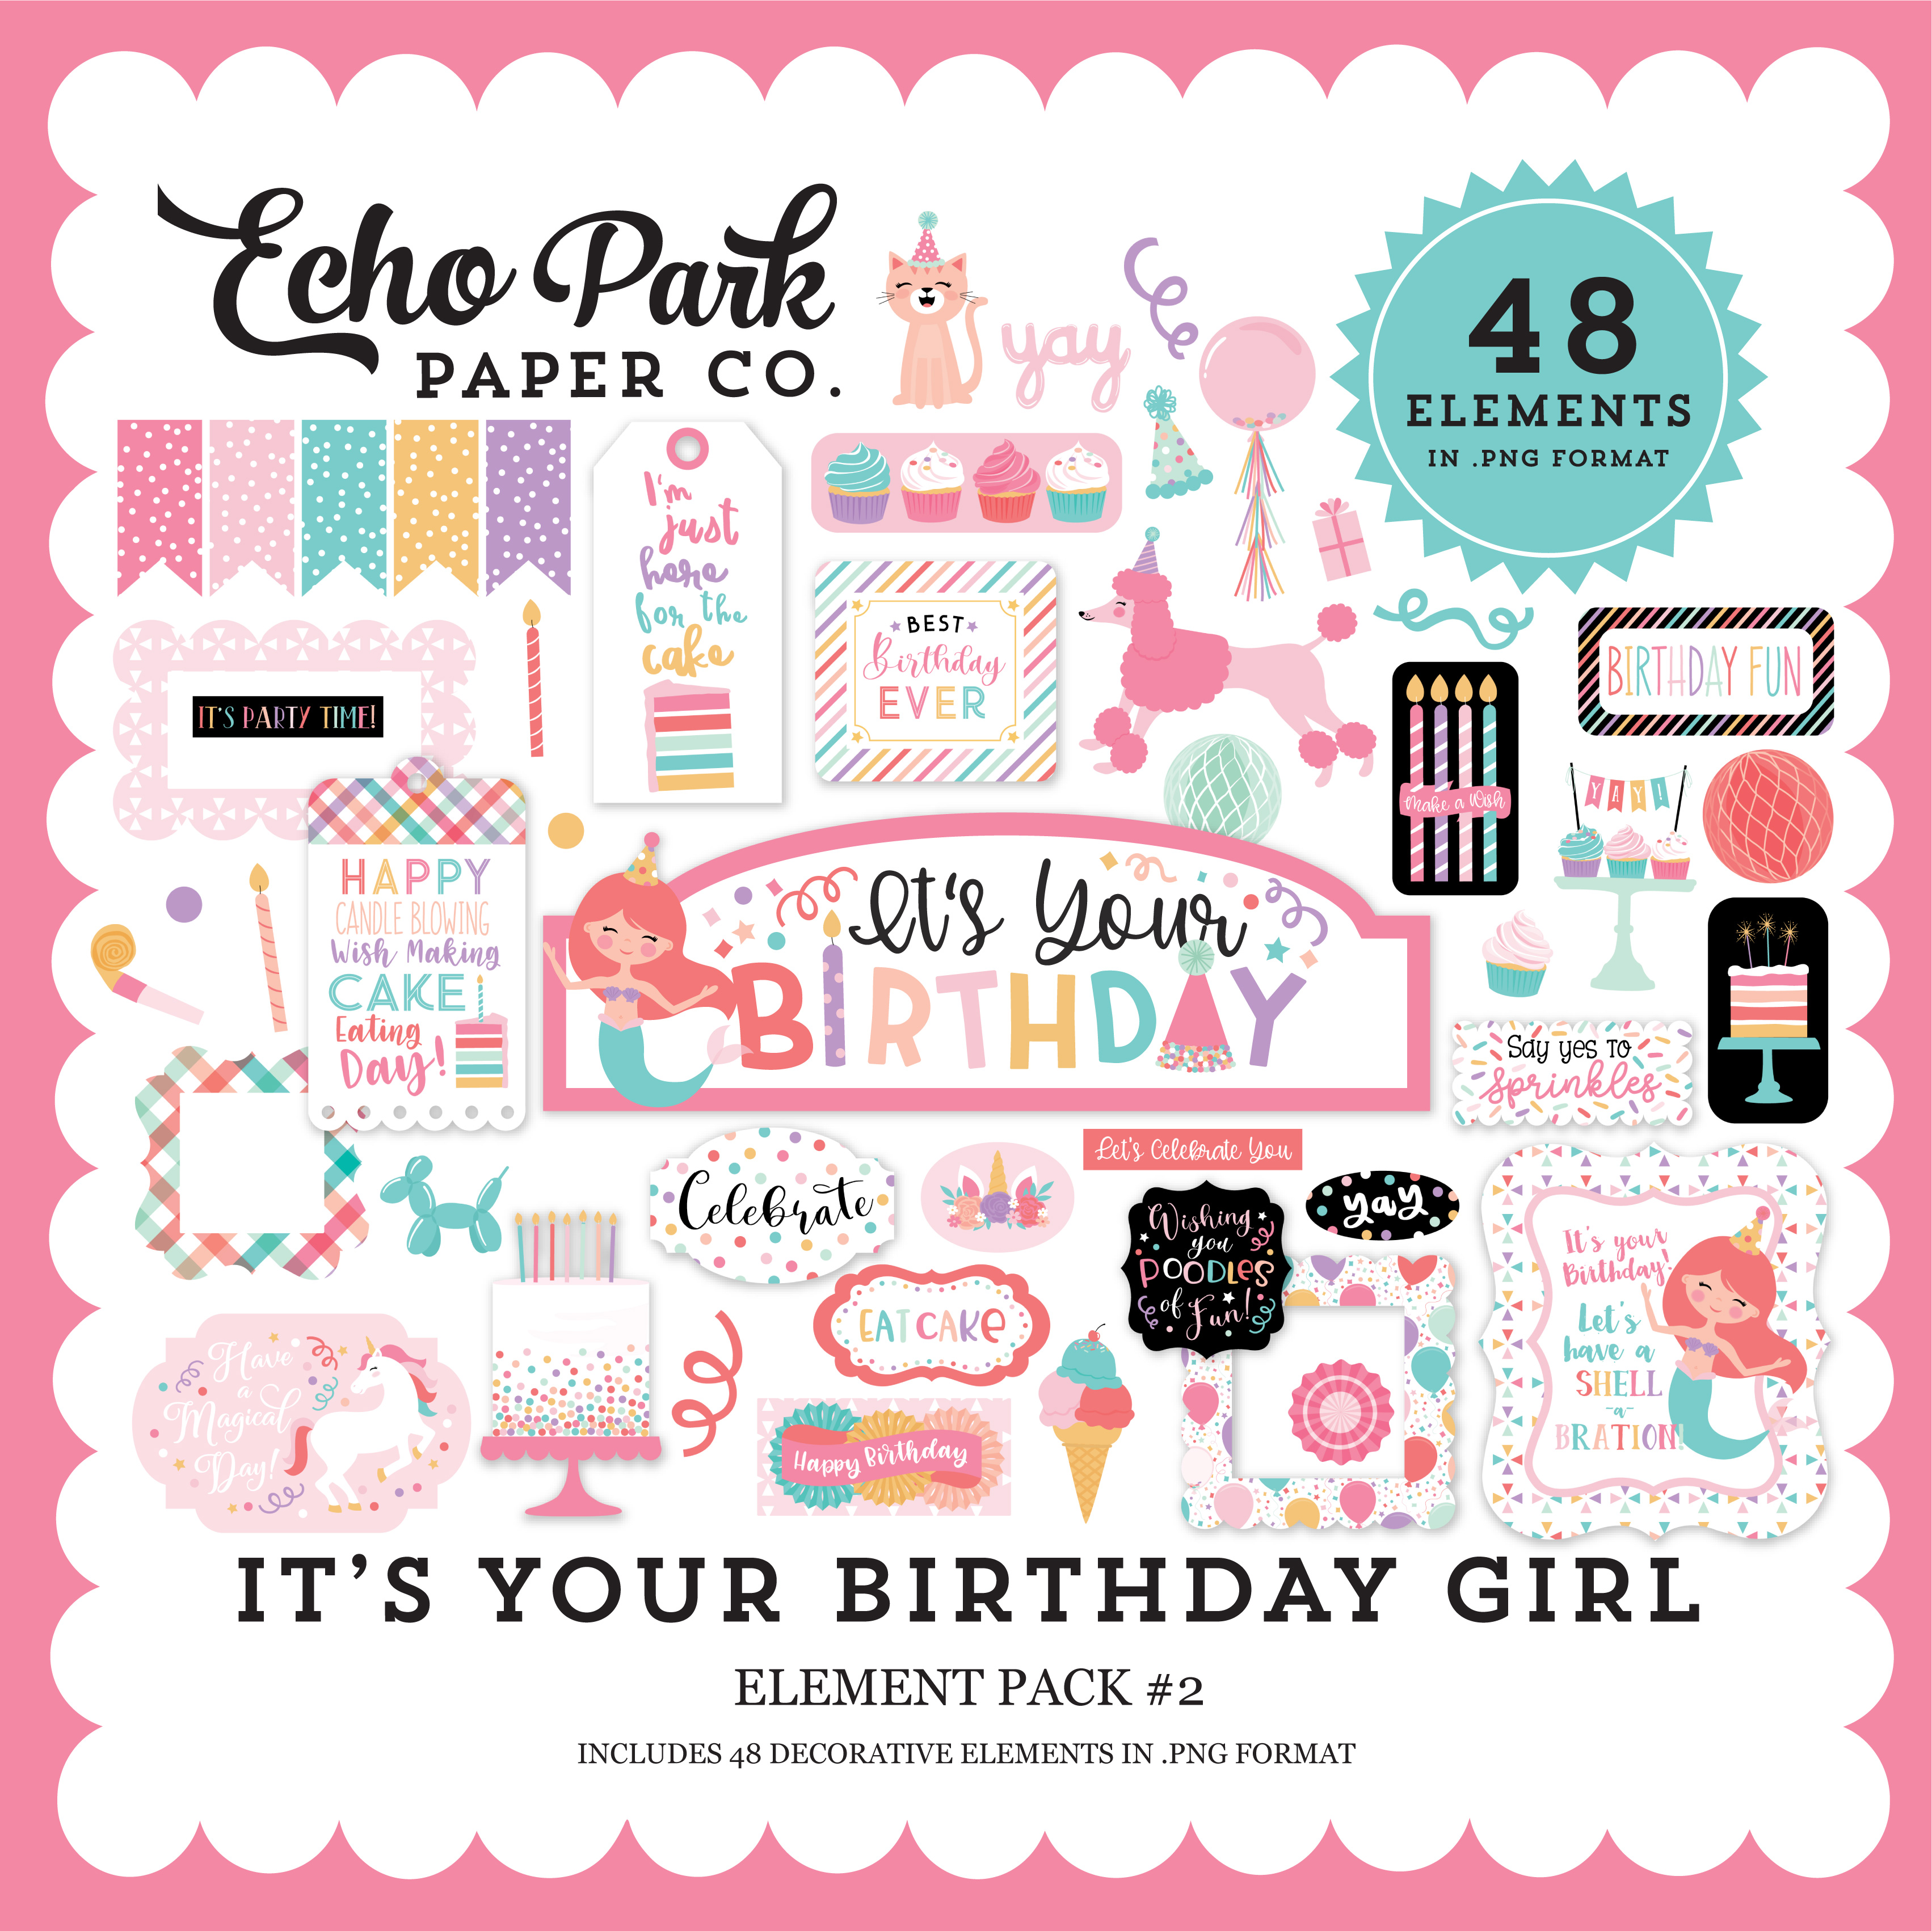 It's Your Birthday Girl Element Pack #2